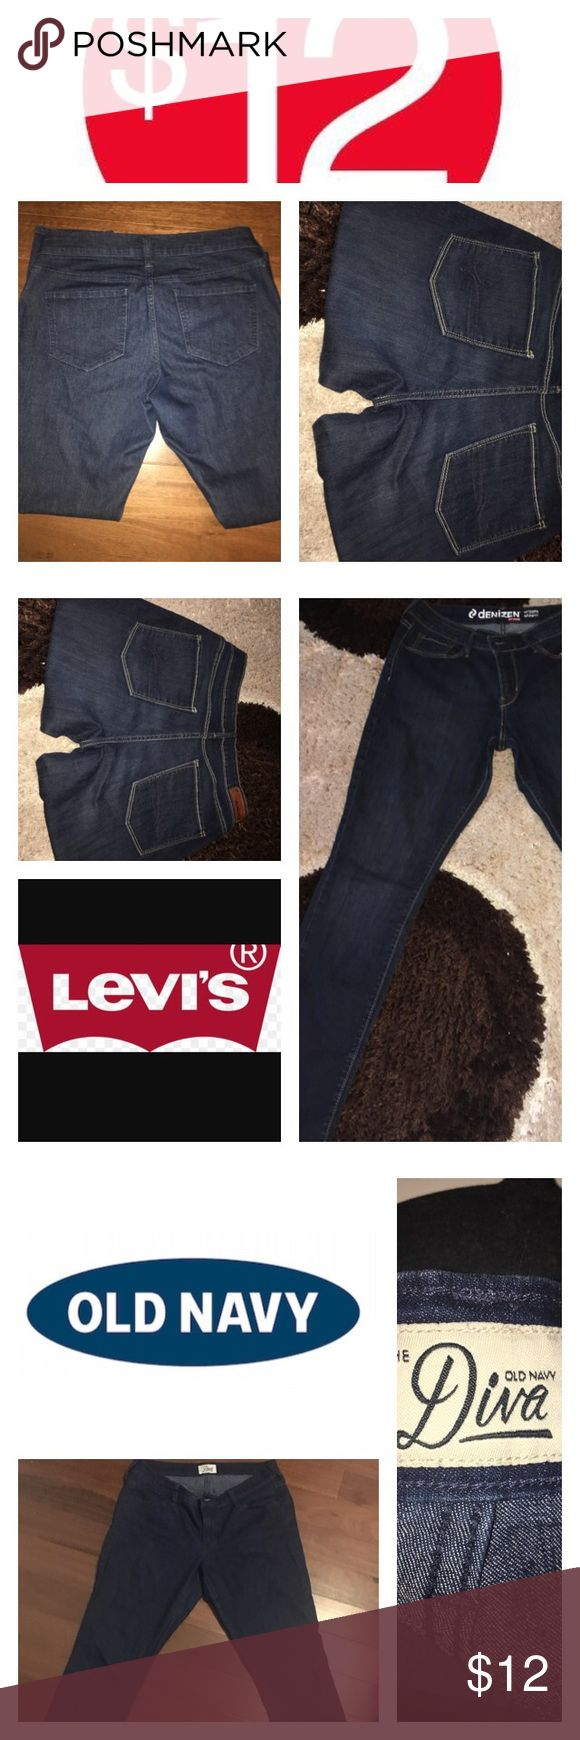 """🌷💝SALE: 2 for $12, oldnavy and levis jeans 2 for $12 old navy diva skinny jeans, and levis denizen modern skinny jeans bundle.                                  both size 10.                                   Great quality jeans                            *old navy jeans rise is 10 inches """"button to crotch"""" inseam is 29 in, cuff is 6 in.                                       *LEVIS jeans rise is 10 inches, inseam is 28 in, cuff is 6 in Levi's and Old Navy Jeans Ankle & Cropped"""